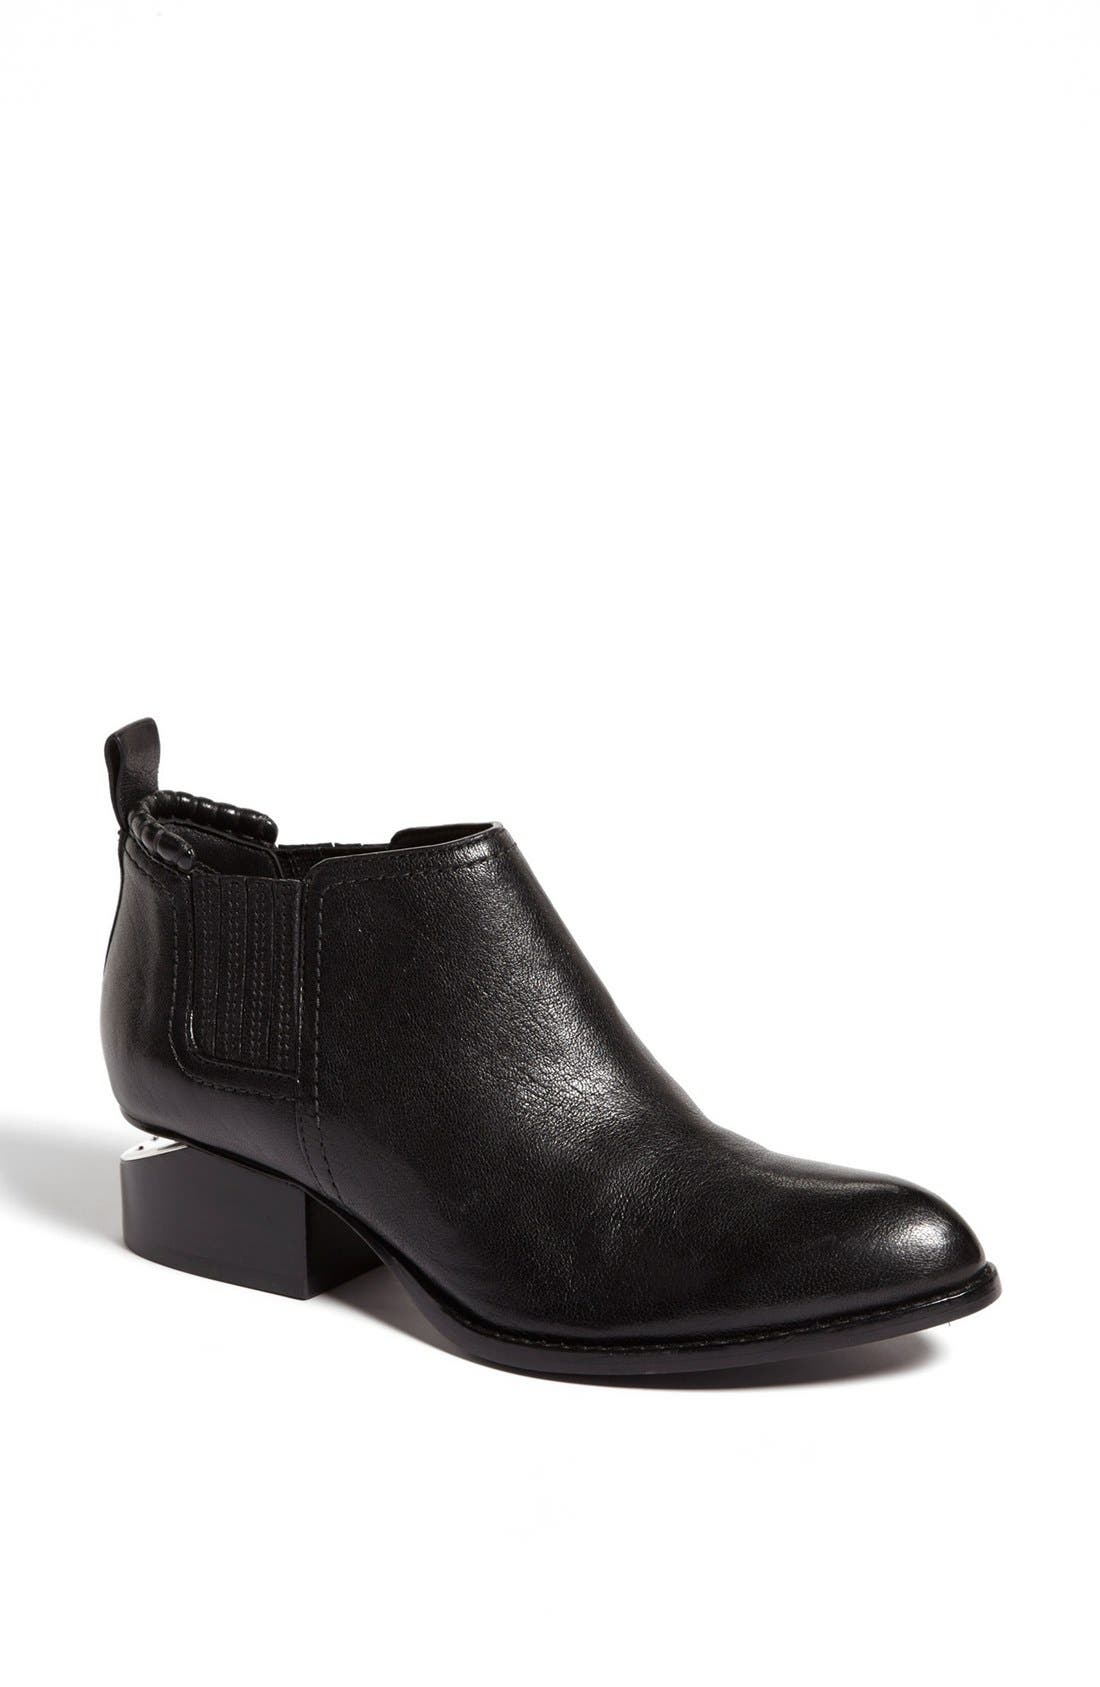 'Kori' Ankle Boot, Main, color, 001